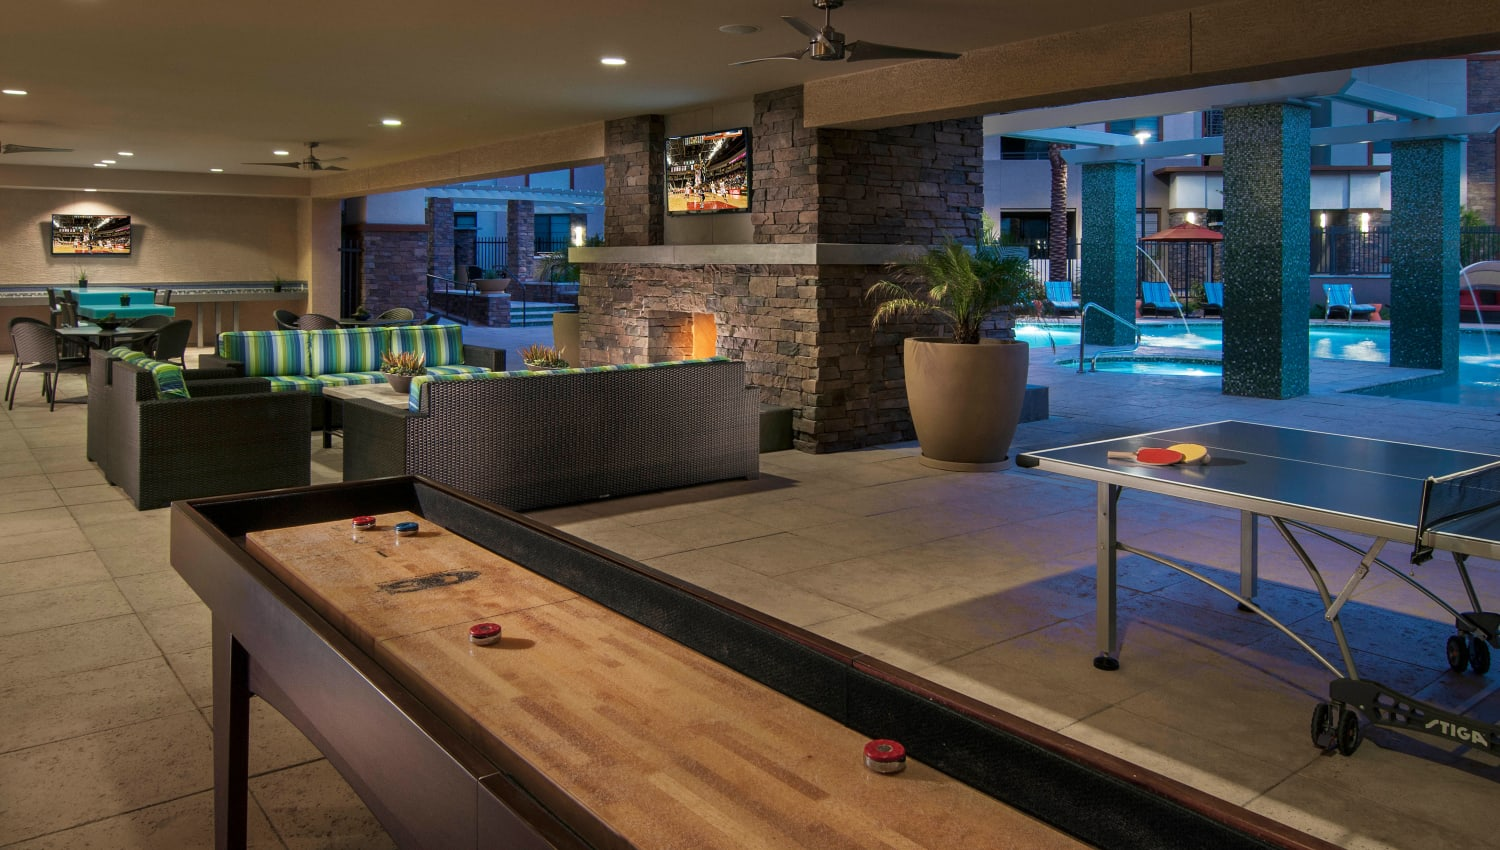 Tabletop shuffleboard in the game room at Redstone at SanTan Village in Gilbert, Arizona